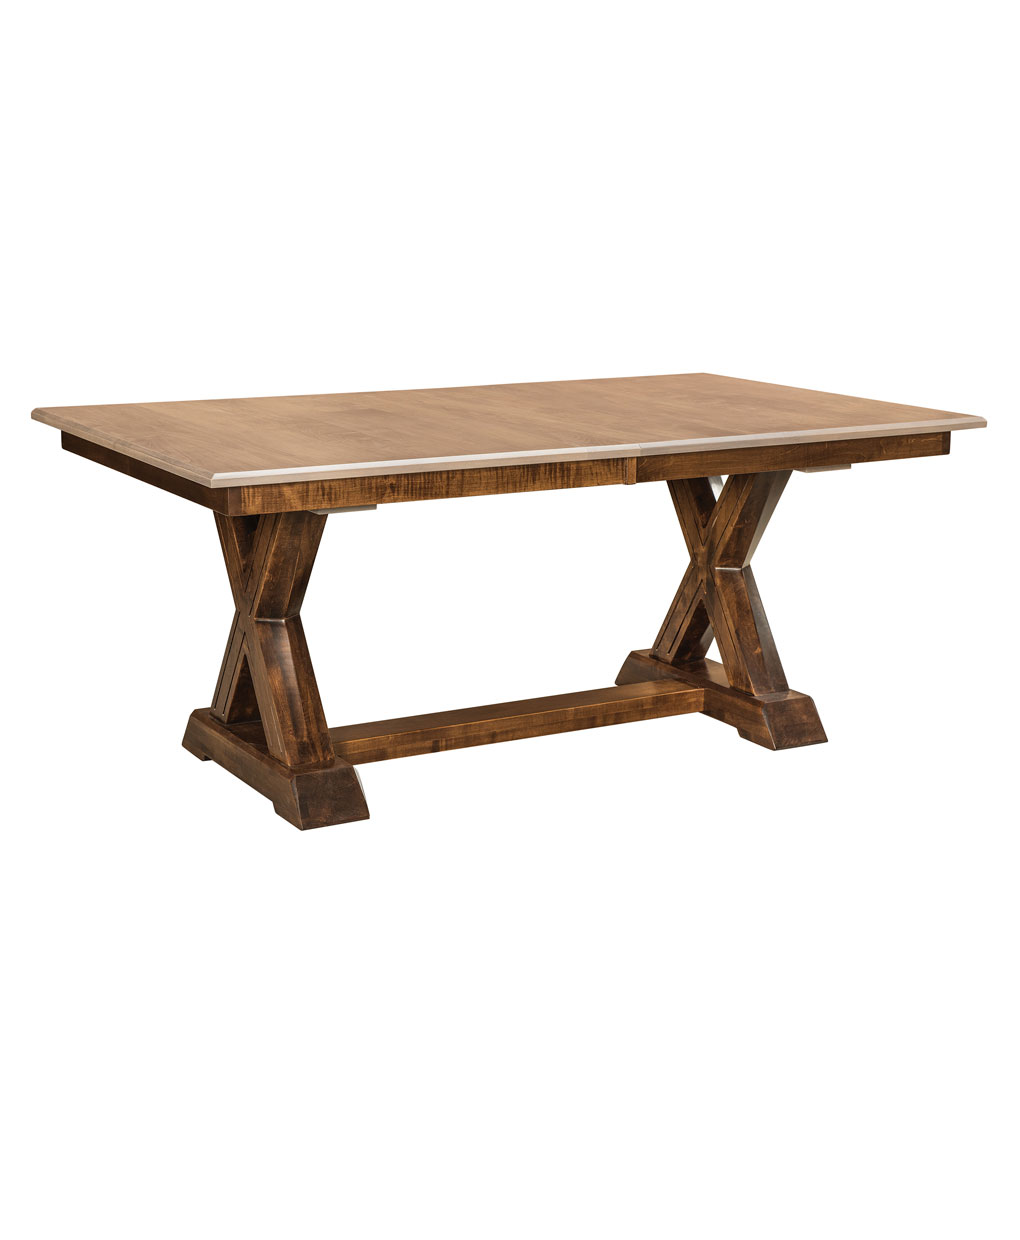 Trestle Table Amish Dining Room: Knoxville Trestle Dining Table